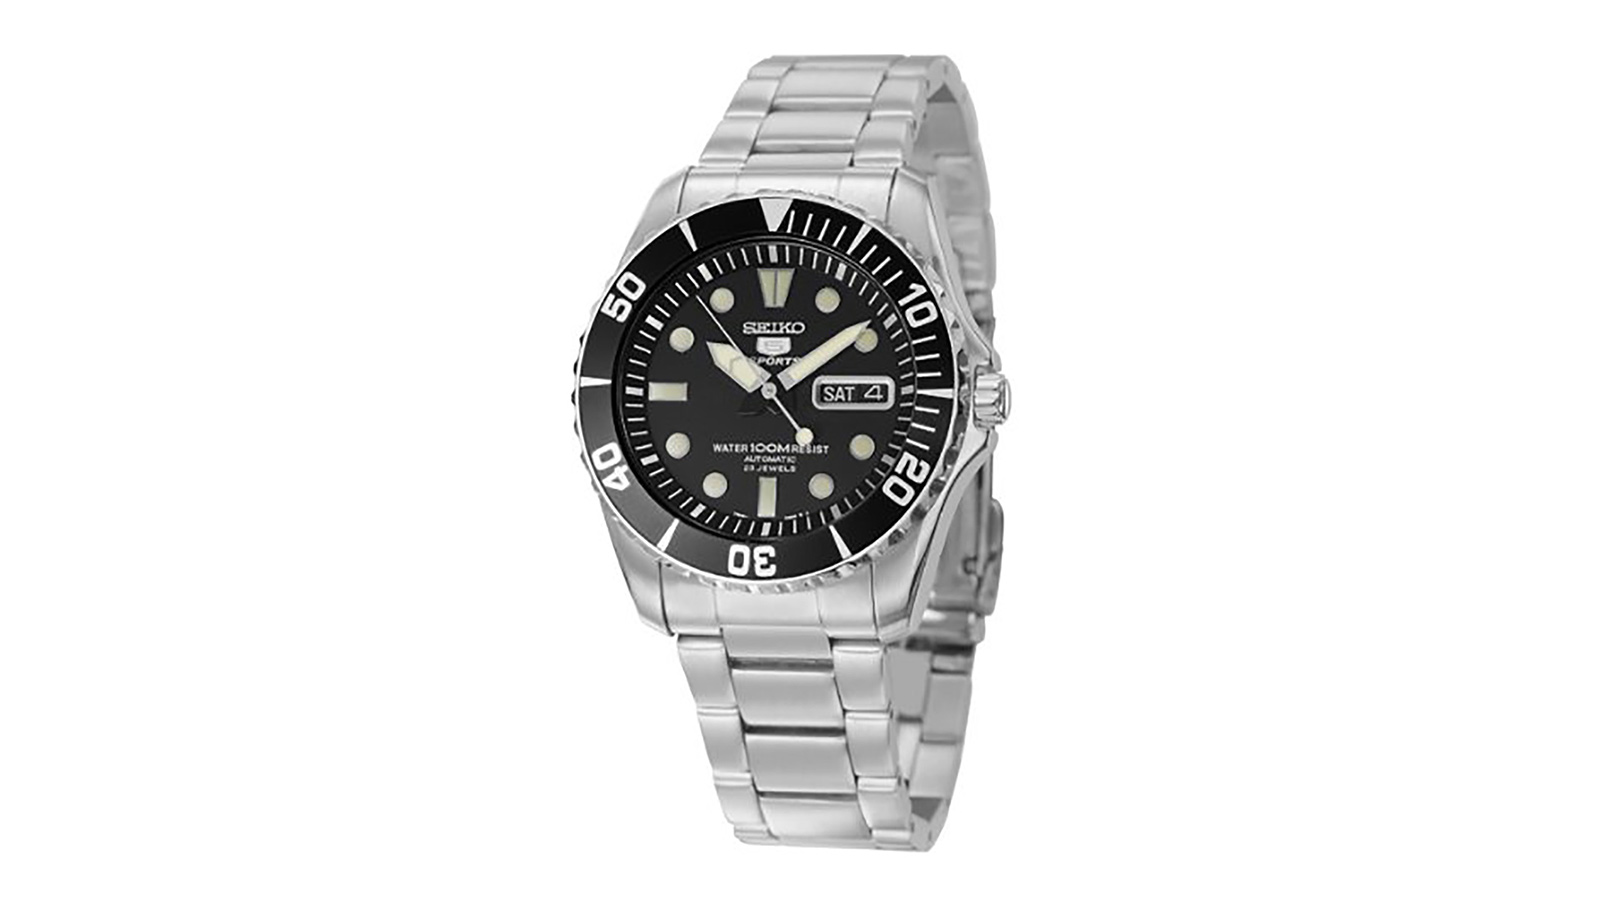 Seiko Men's SNZF17J1 5 Sports Automatic Stainless Steel Watch   the best men's watches under $200